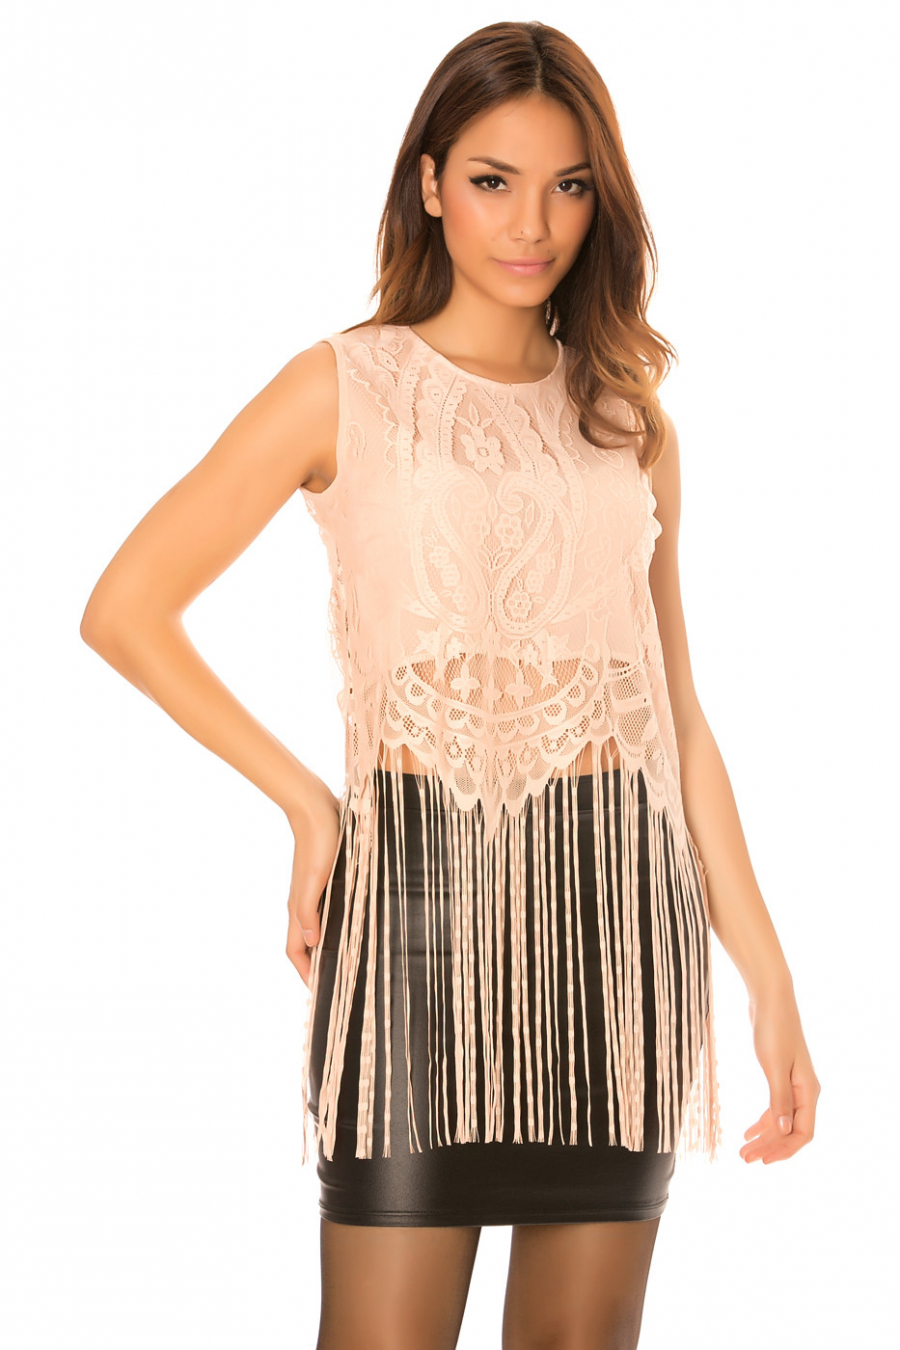 Pink lace top with long fringes. C-267